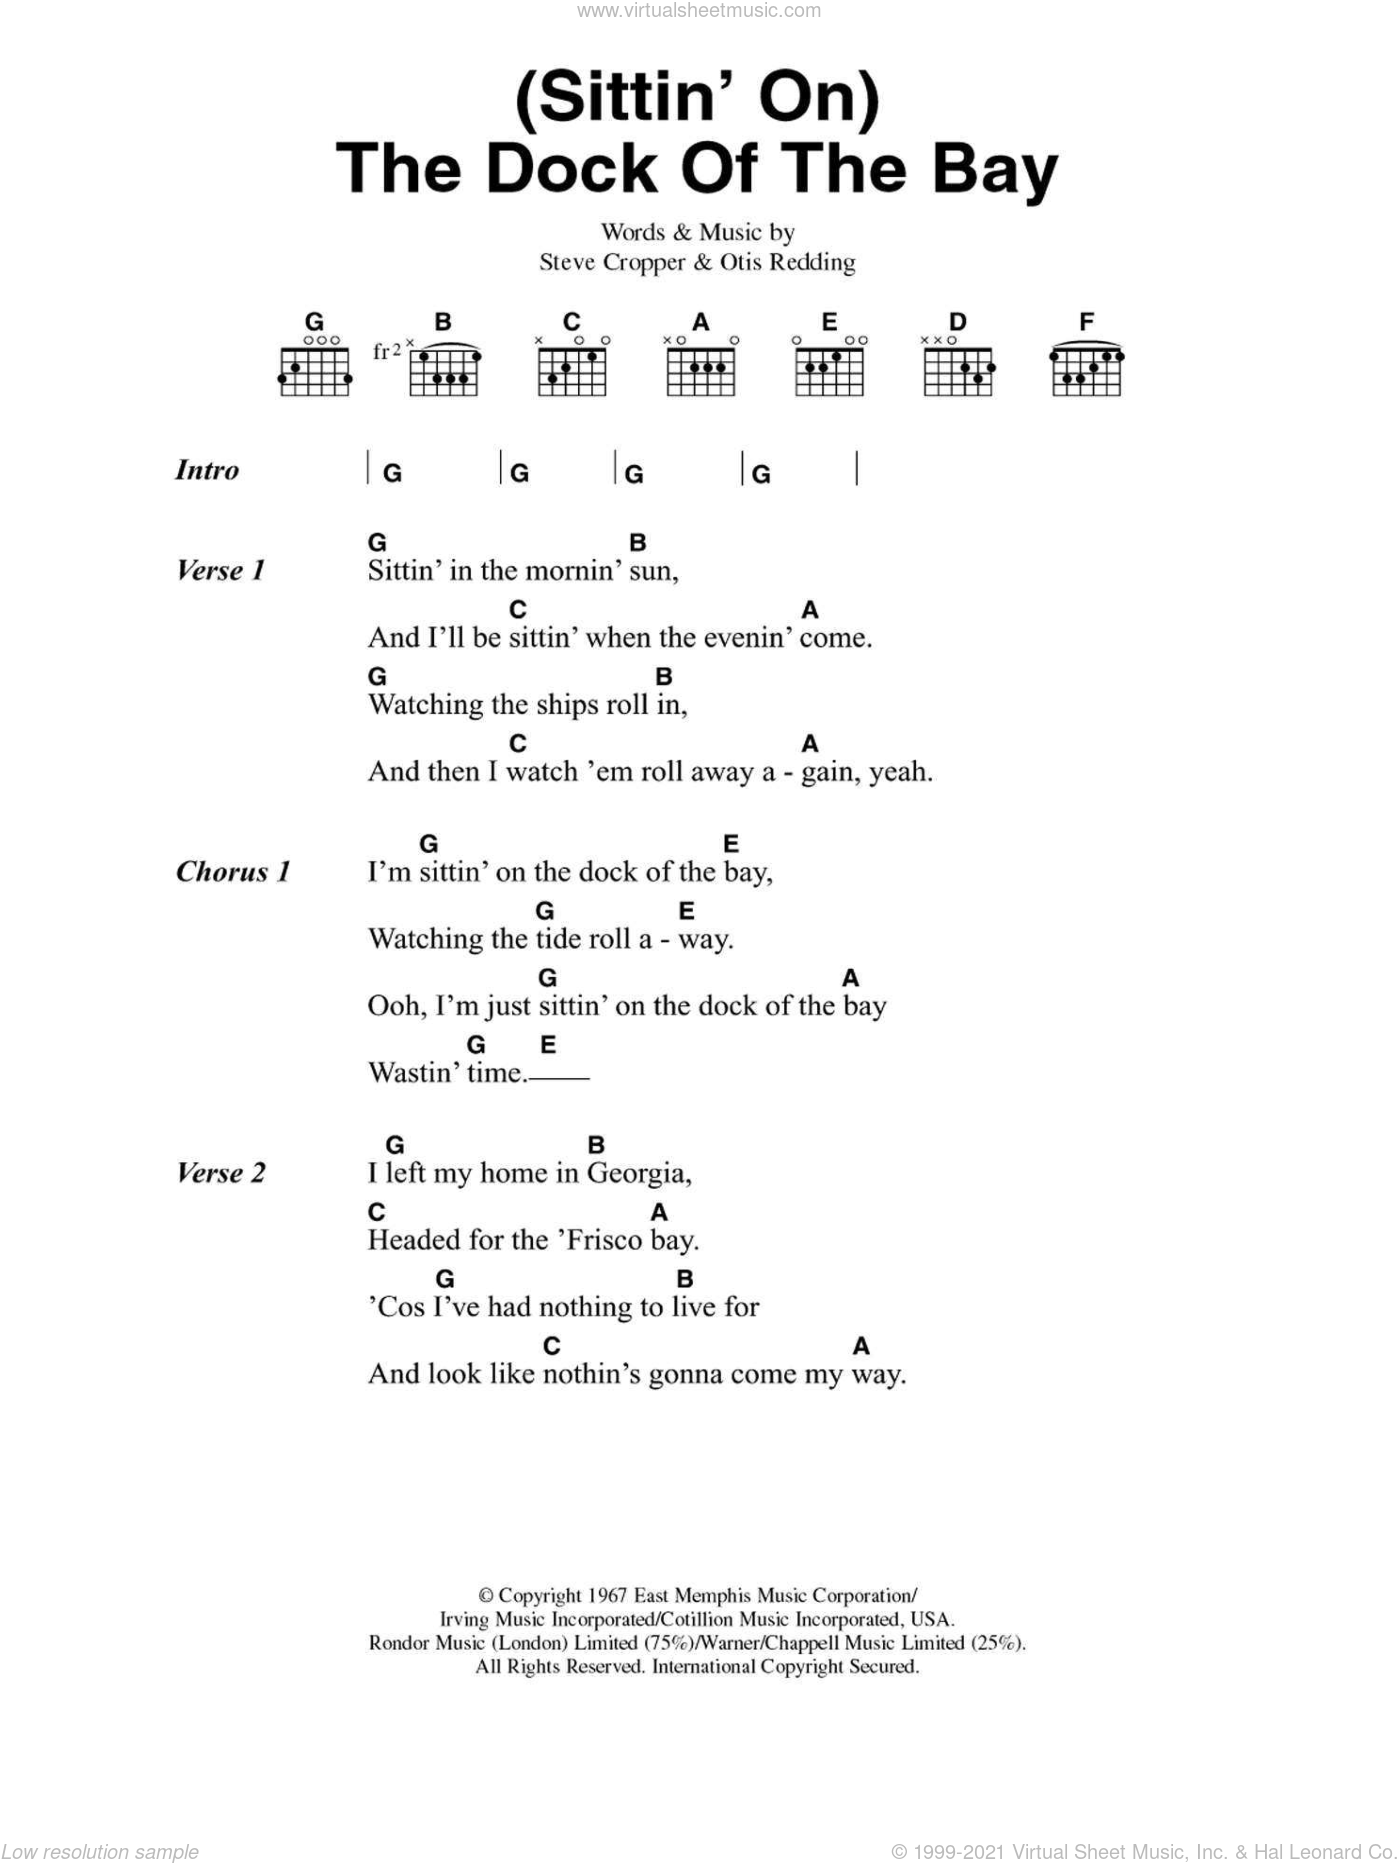 (Sittin' On) The Dock Of The Bay sheet music for guitar (chords) by Otis Redding and Steve Cropper. Score Image Preview.